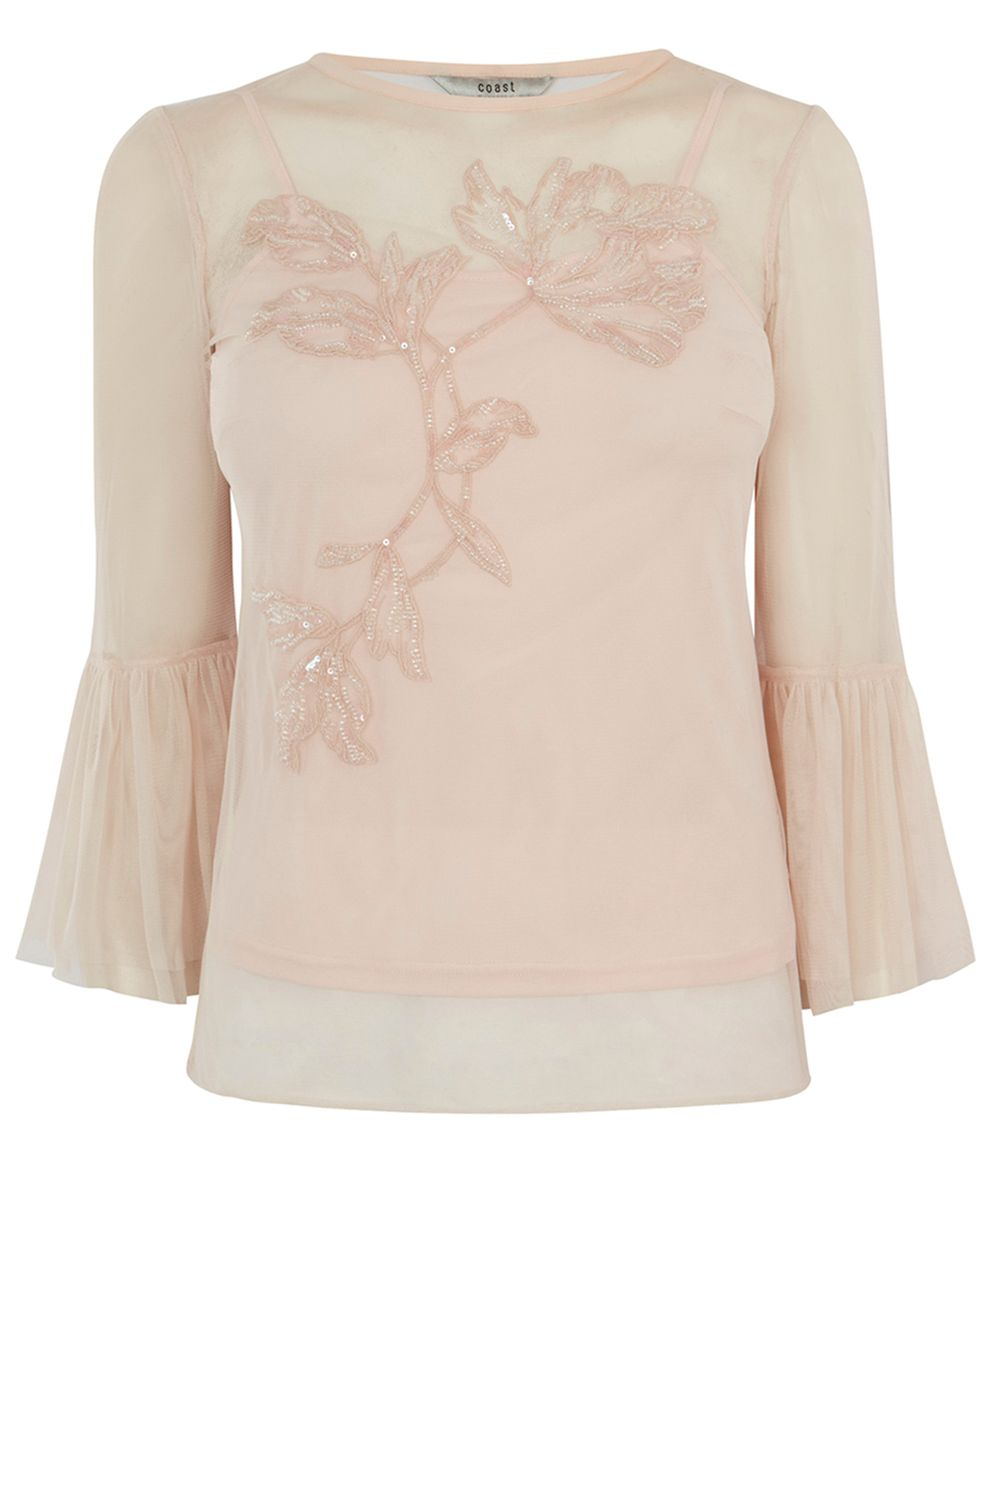 Coast Rae Artwork Top, Pink